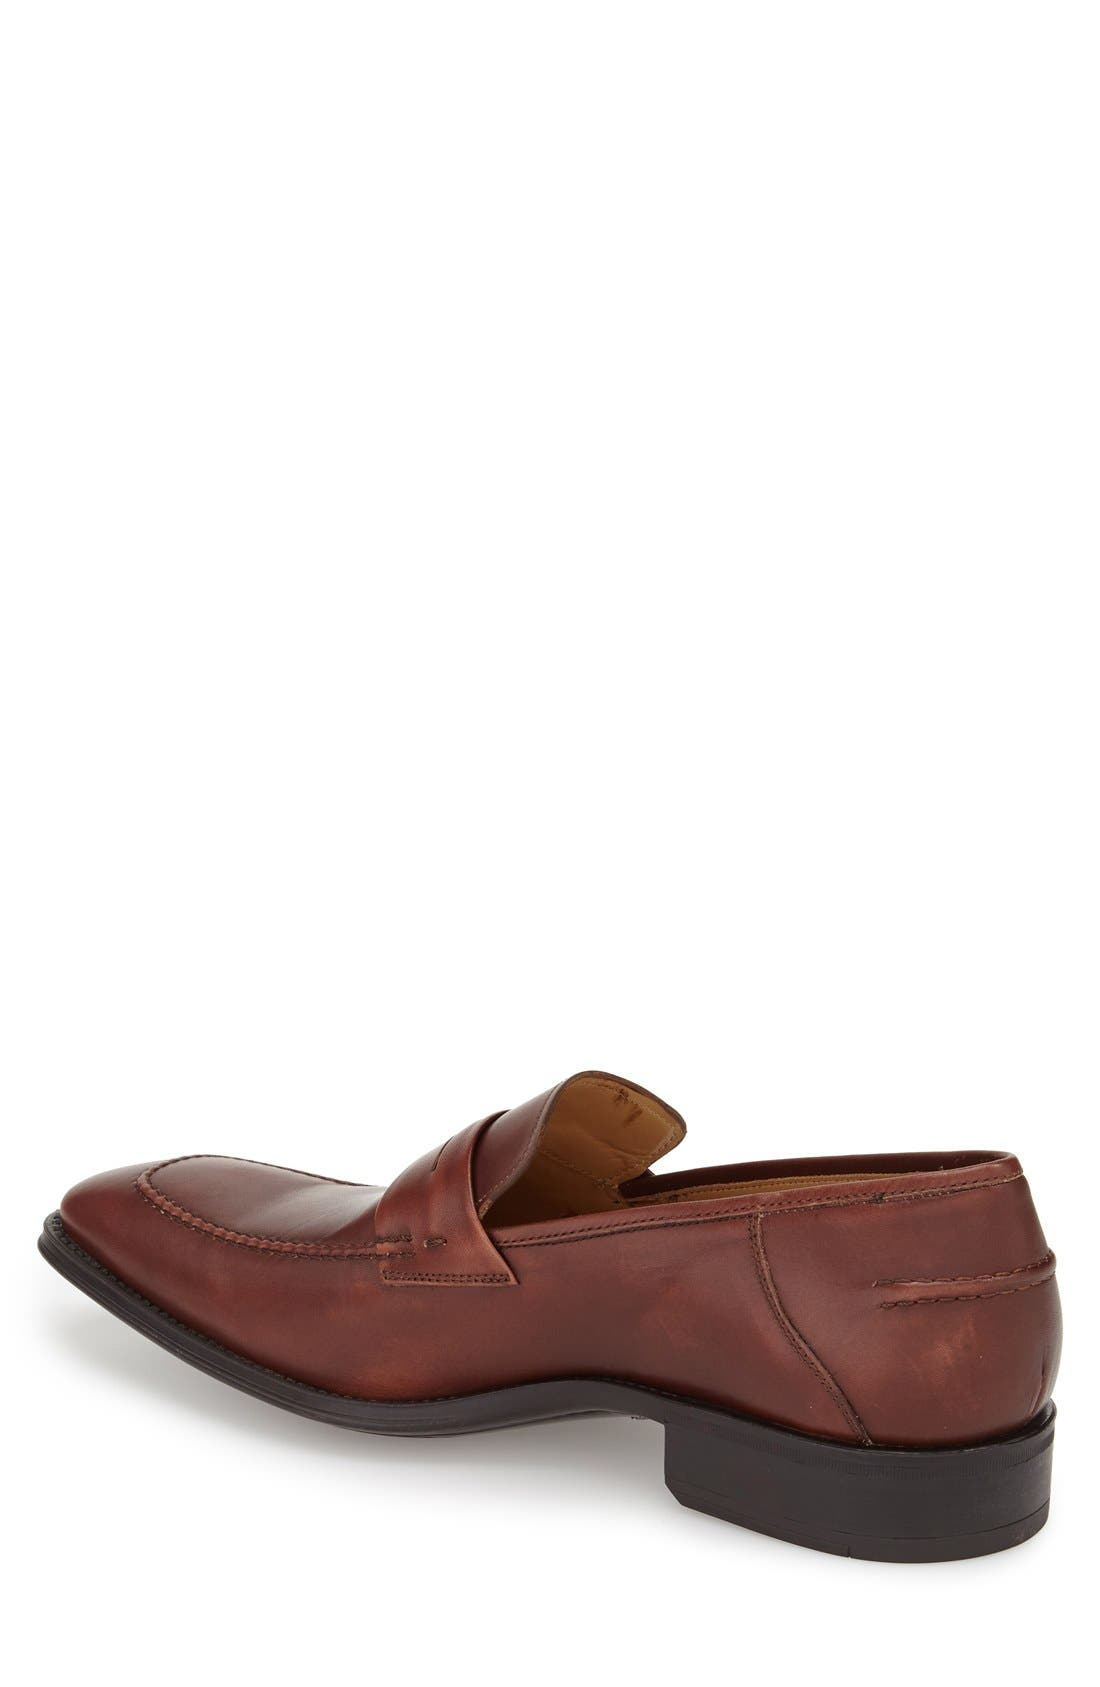 'Trento' Penny Loafer,                             Alternate thumbnail 4, color,